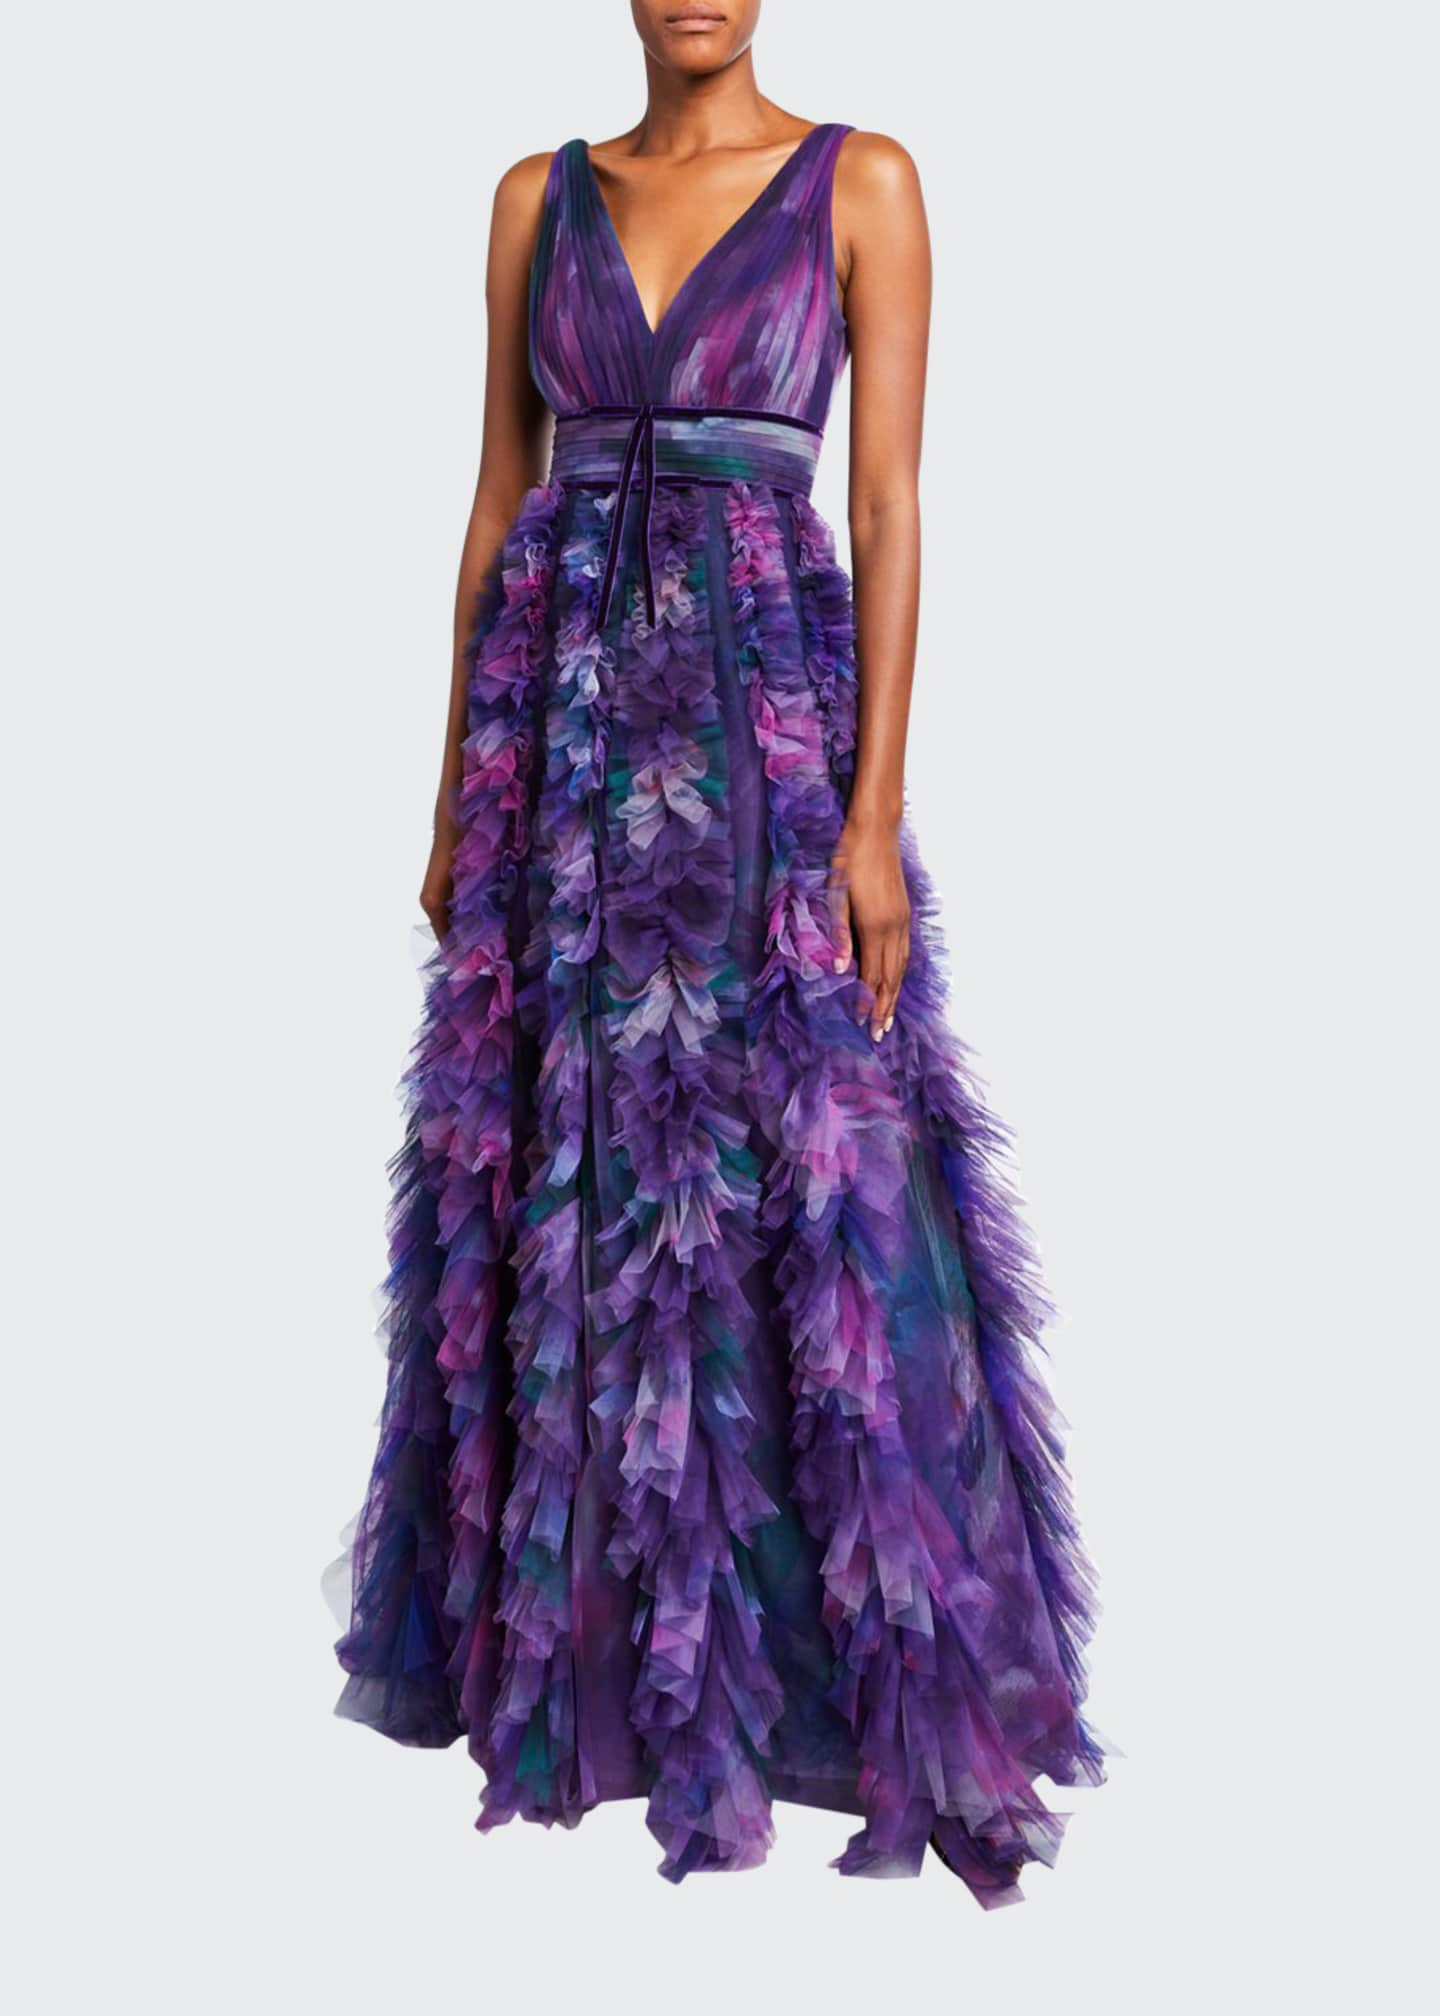 Marchesa Notte Printed V-Neck Sleeveless Textured Tulle A-Line